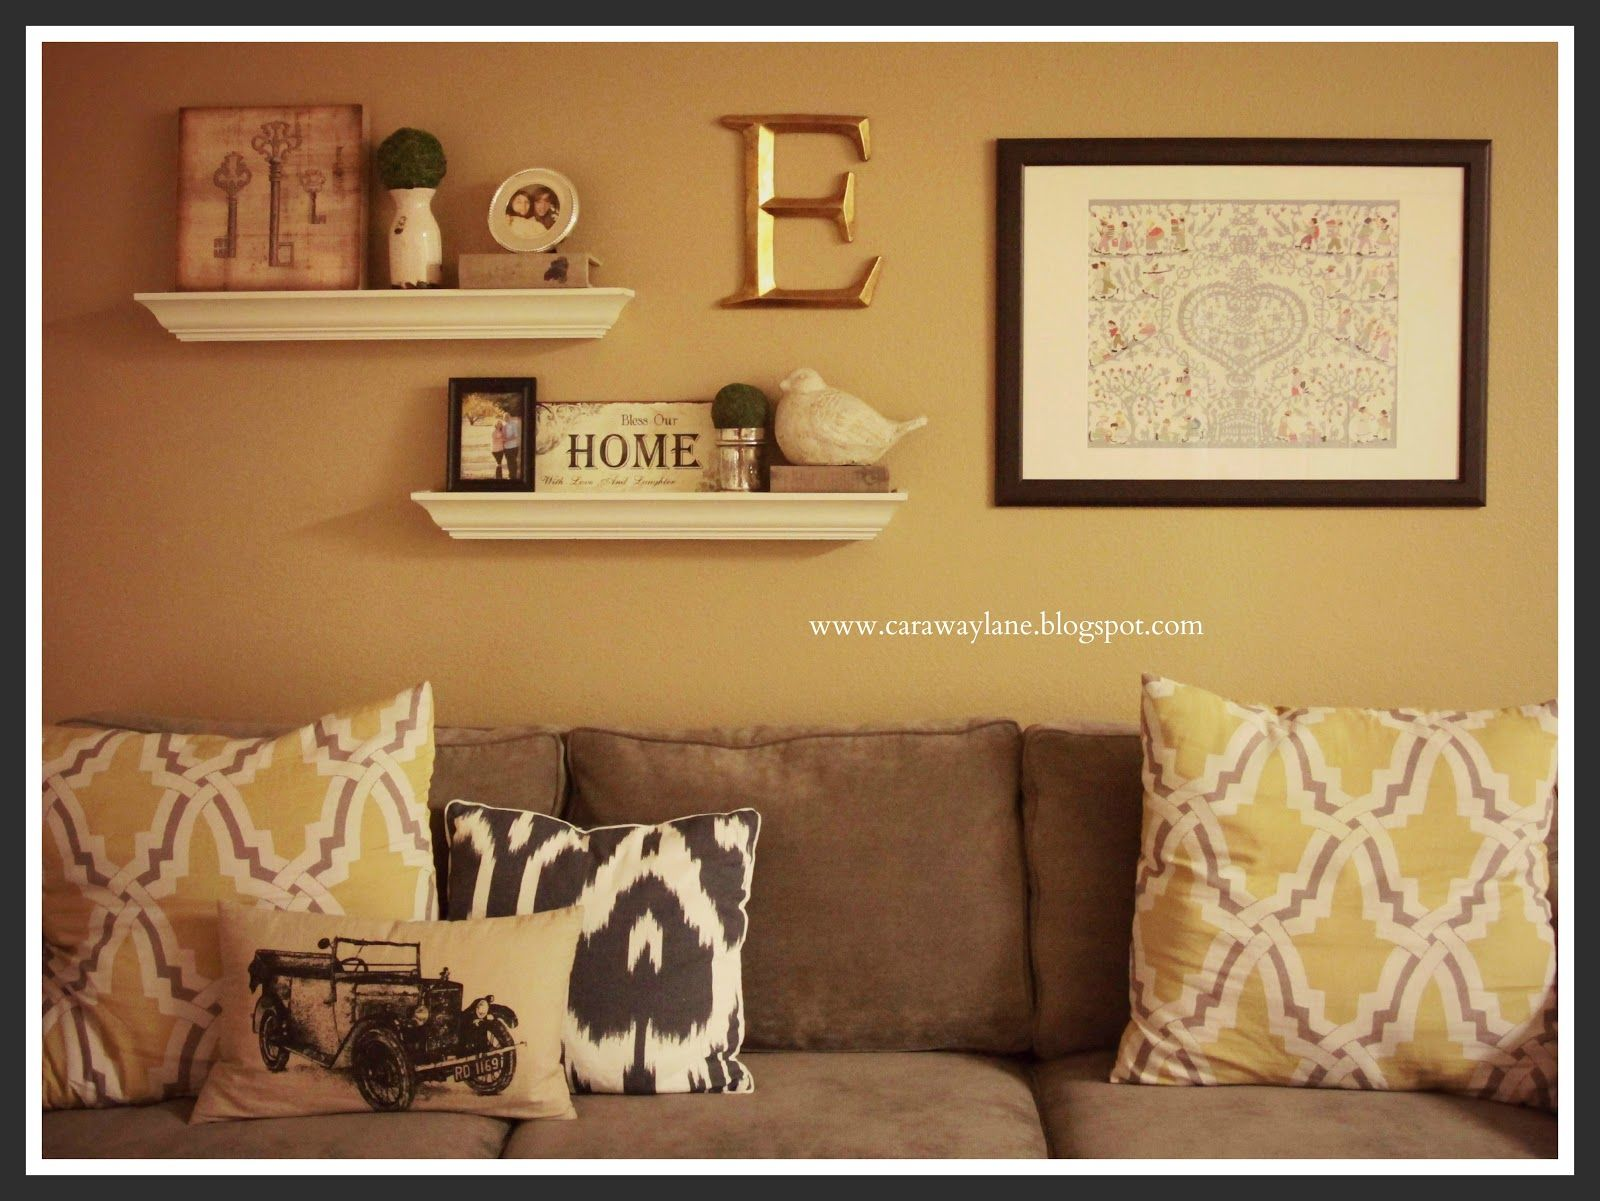 Decorate Over A Sofa Above The Couch Wall Decor Future